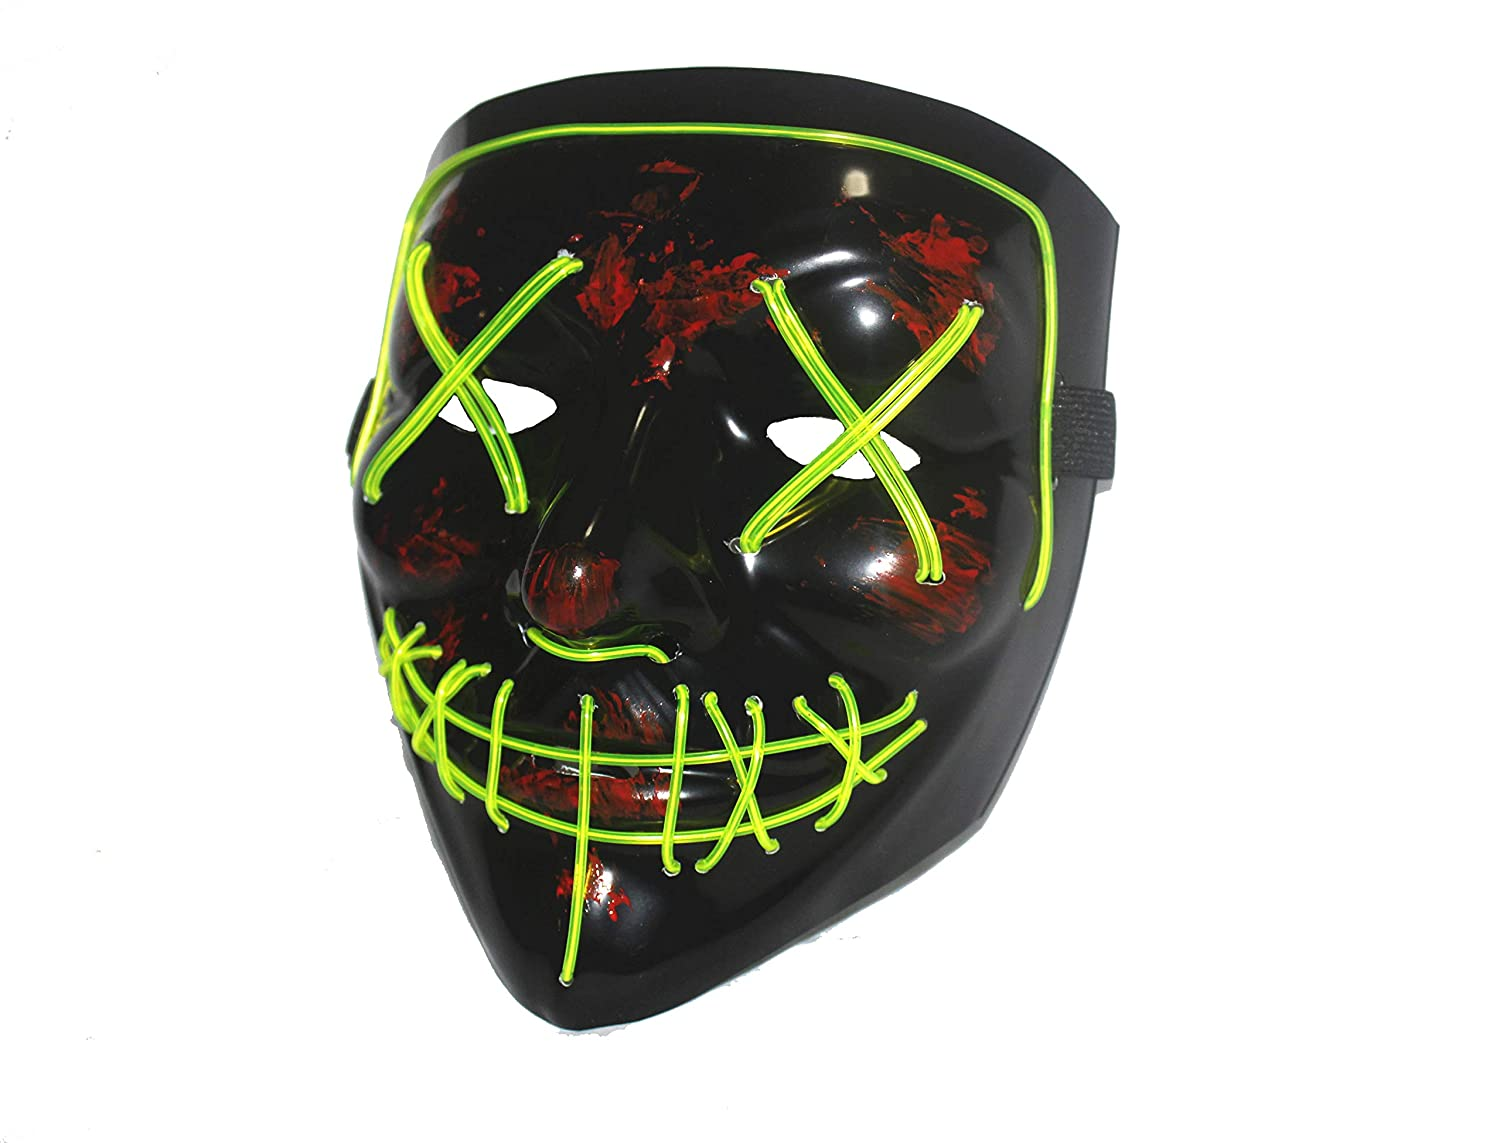 Halloween LED Mask Purge Masks Election Mascara Costume DJ Party Light Up Masks Glow in Dark